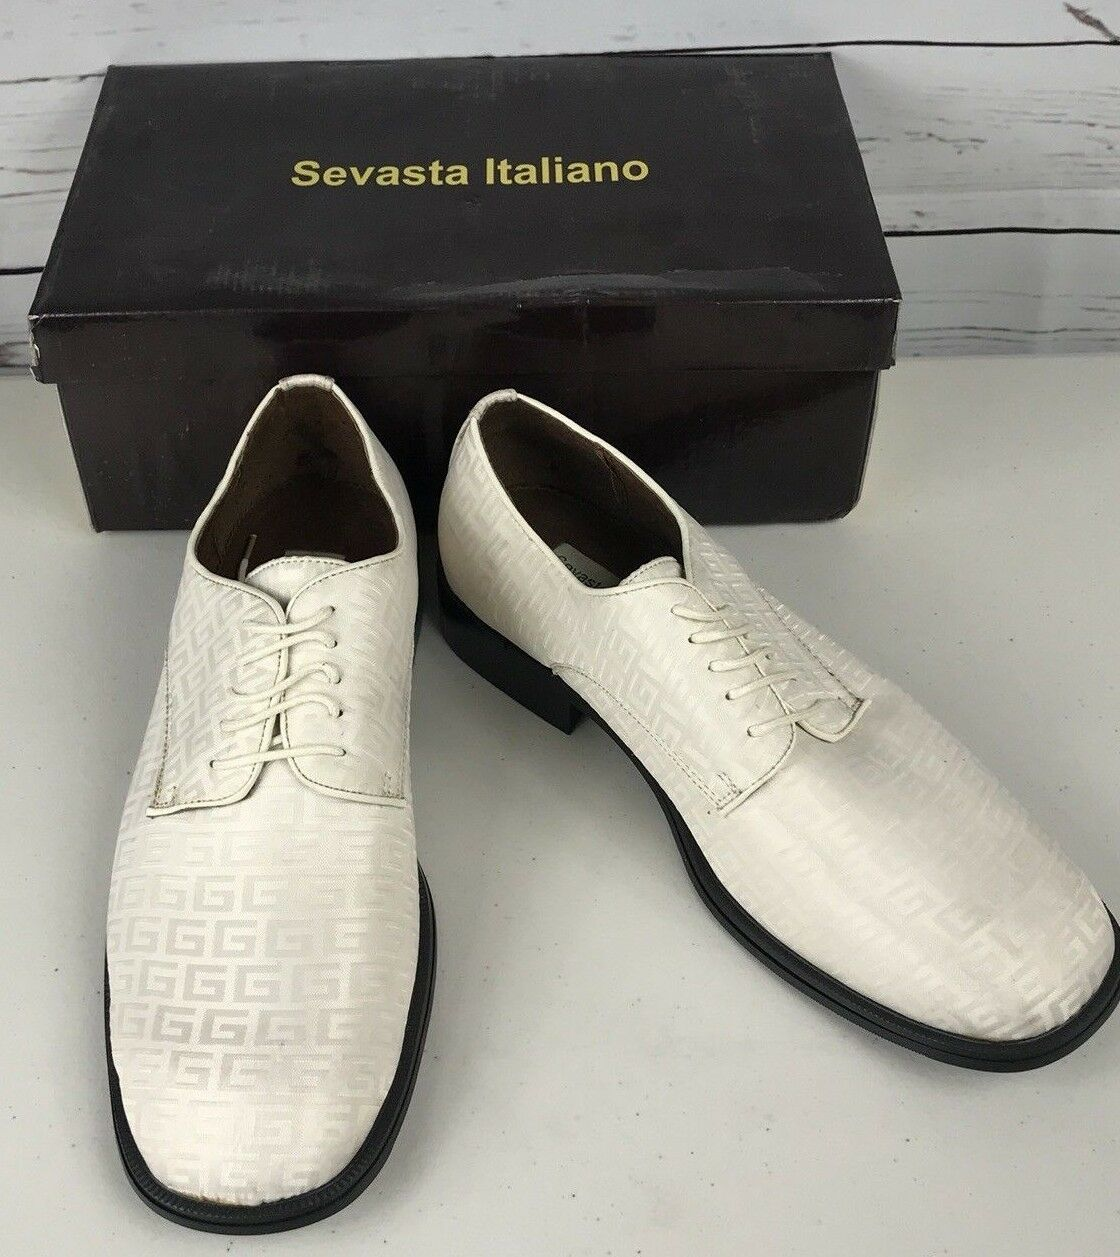 Sevasta Italiano Dress Mens Patent Leather Loafer Dress Italiano Shoe White Bone Size 13 NEW 90fb38